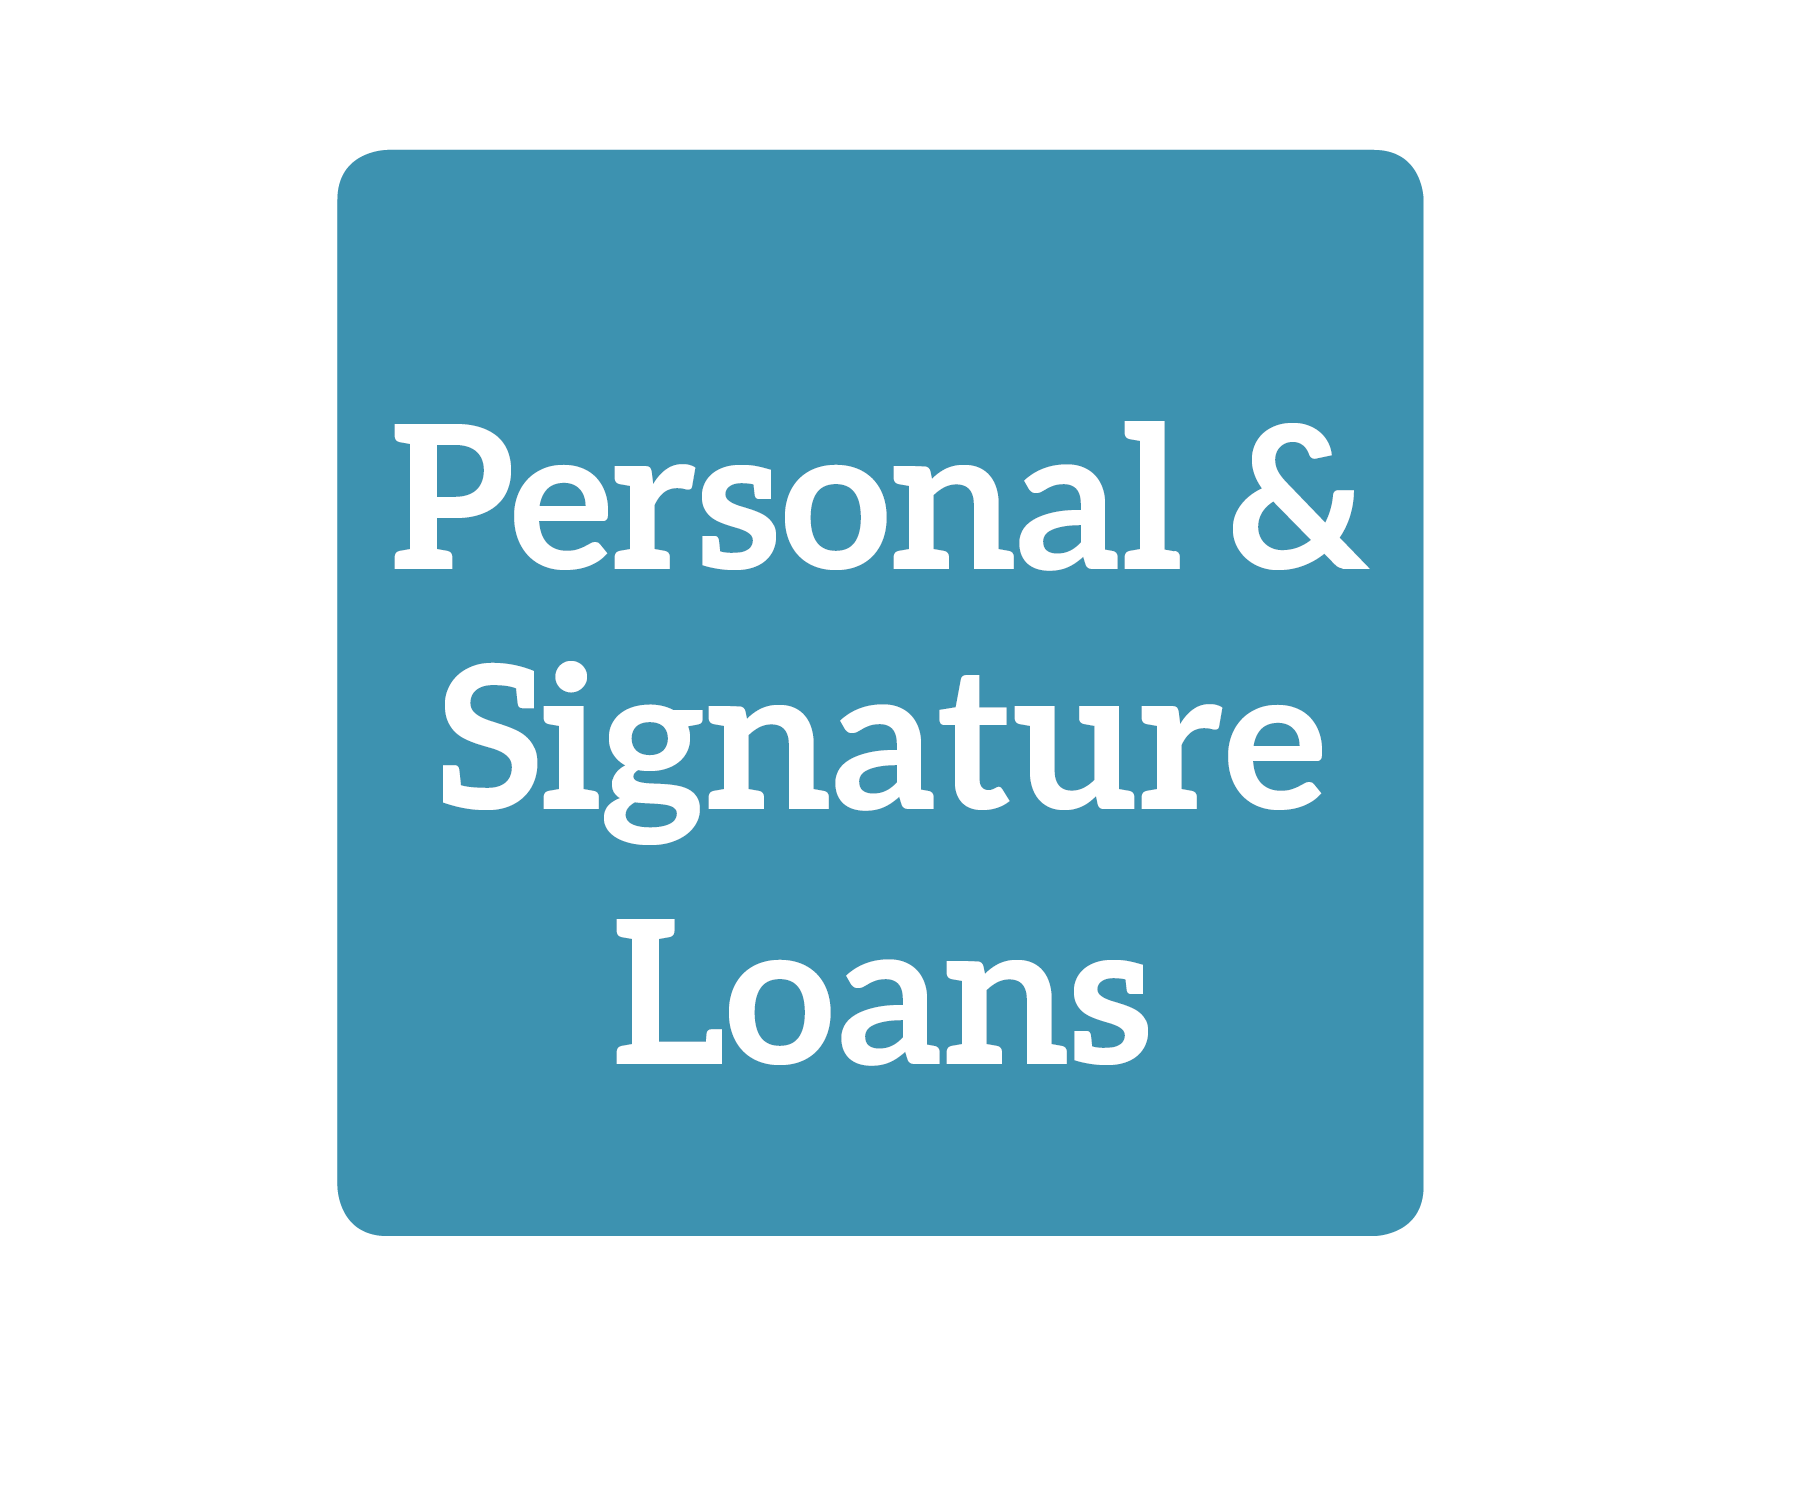 Personal & Signature Loans